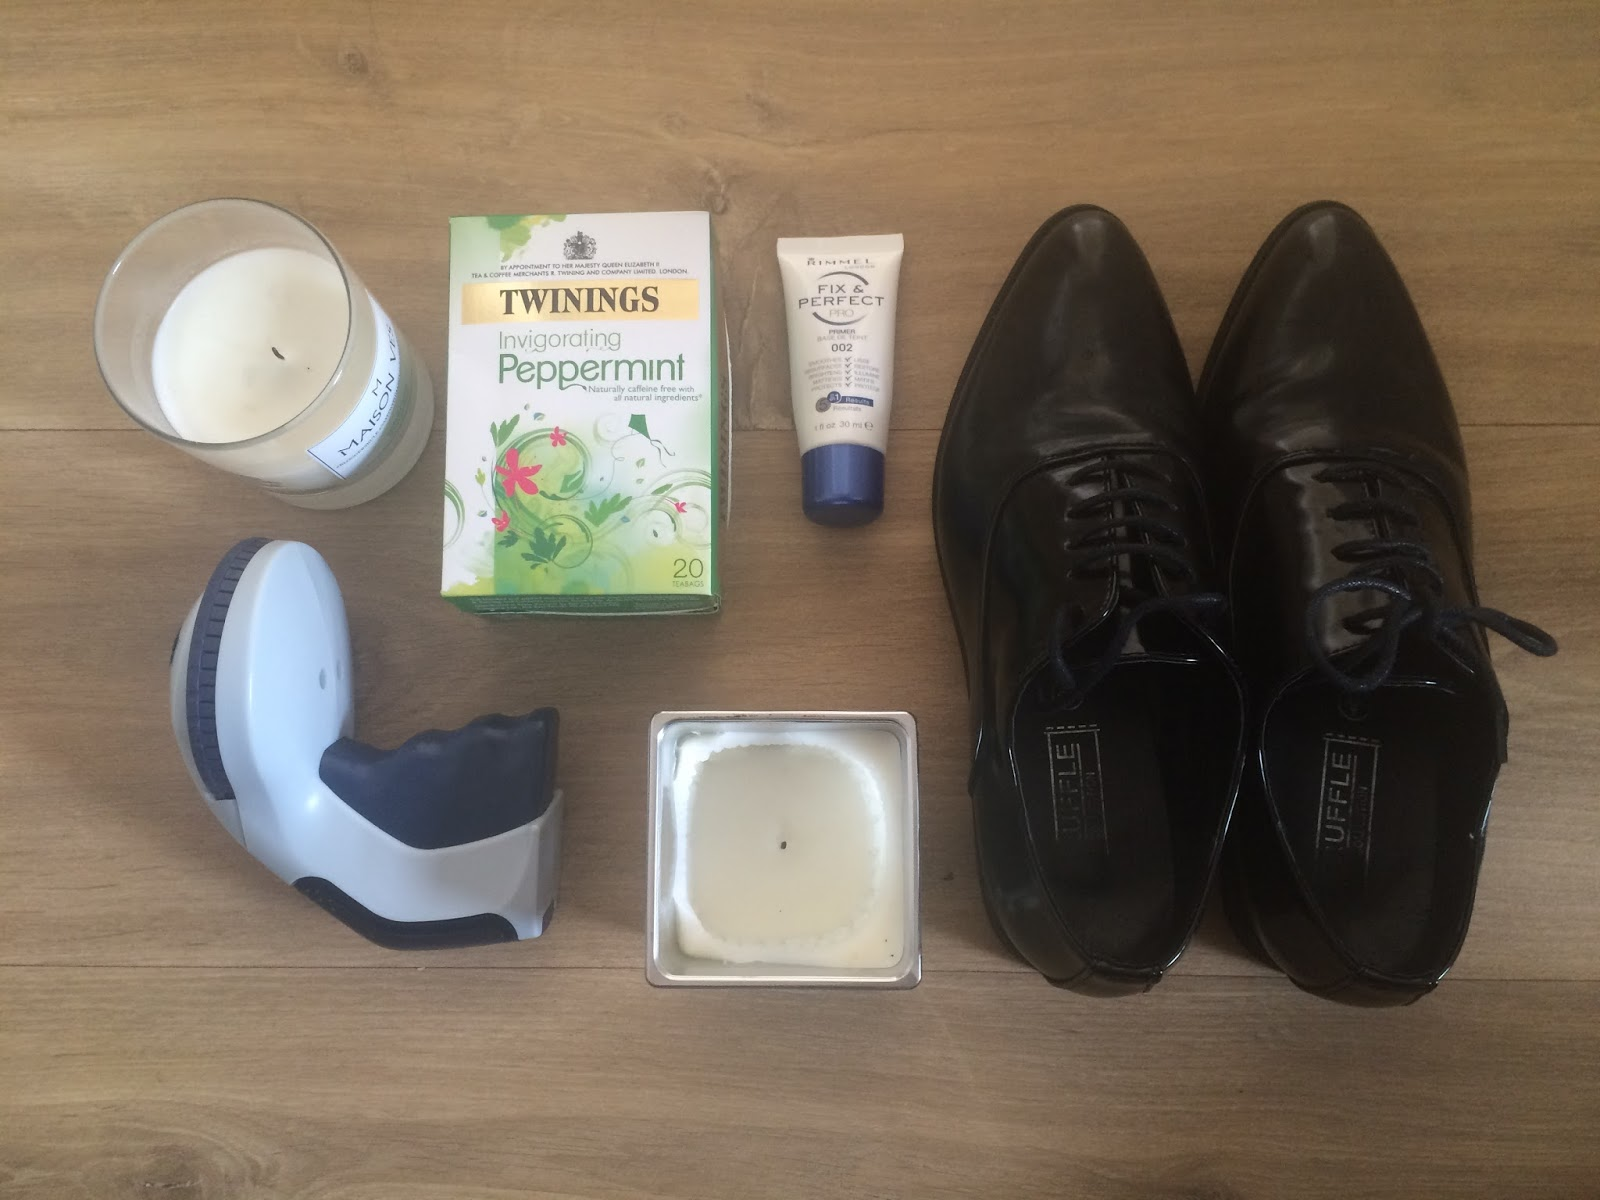 candle, peppermint tea, brogues, label maker, rimmel primer, lifestyle, blogger, fashion